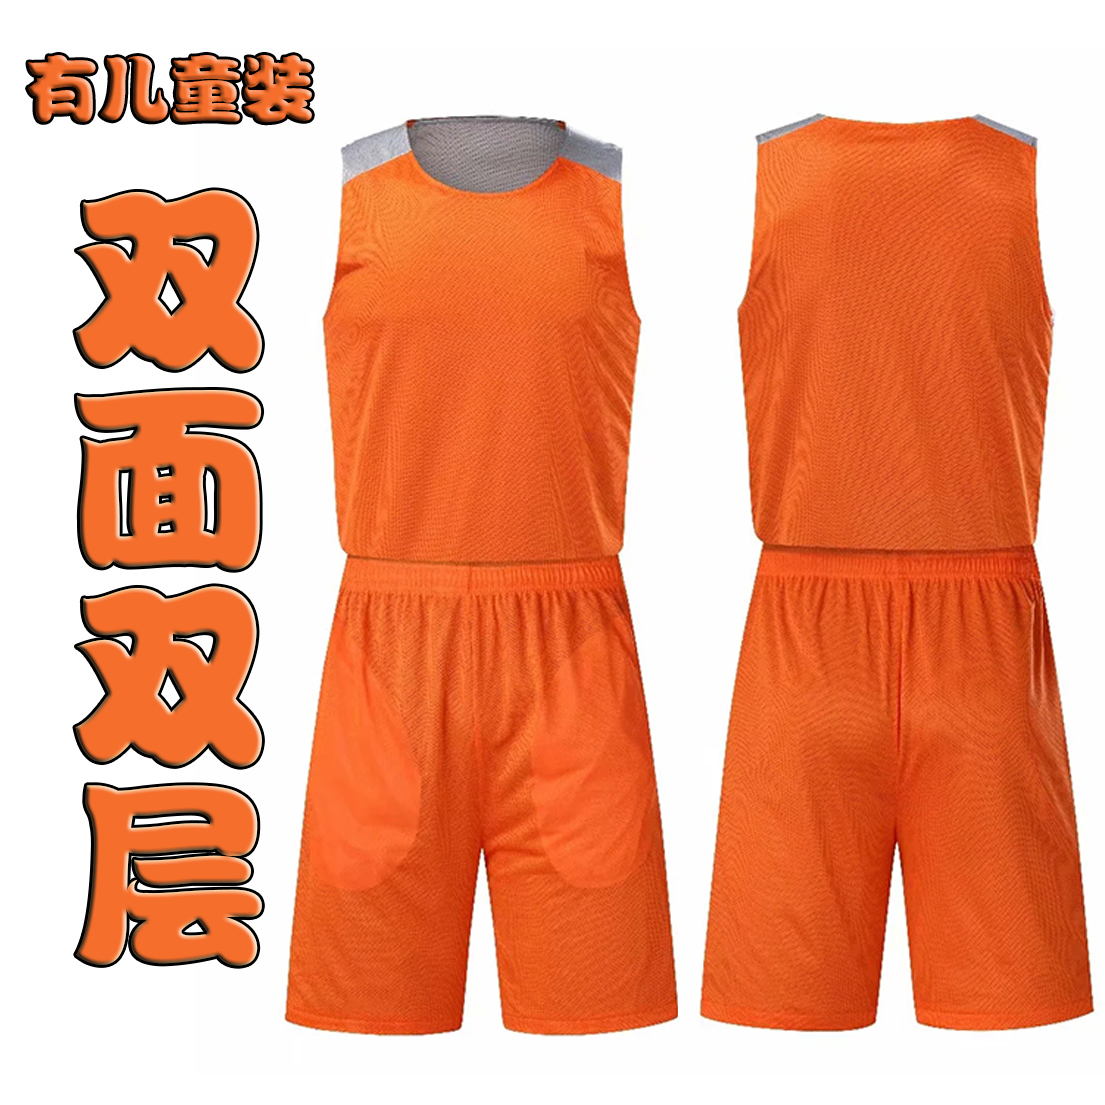 New double-sided double-layer childrens breathable basketball suit mens quick dry running training sportswear print size